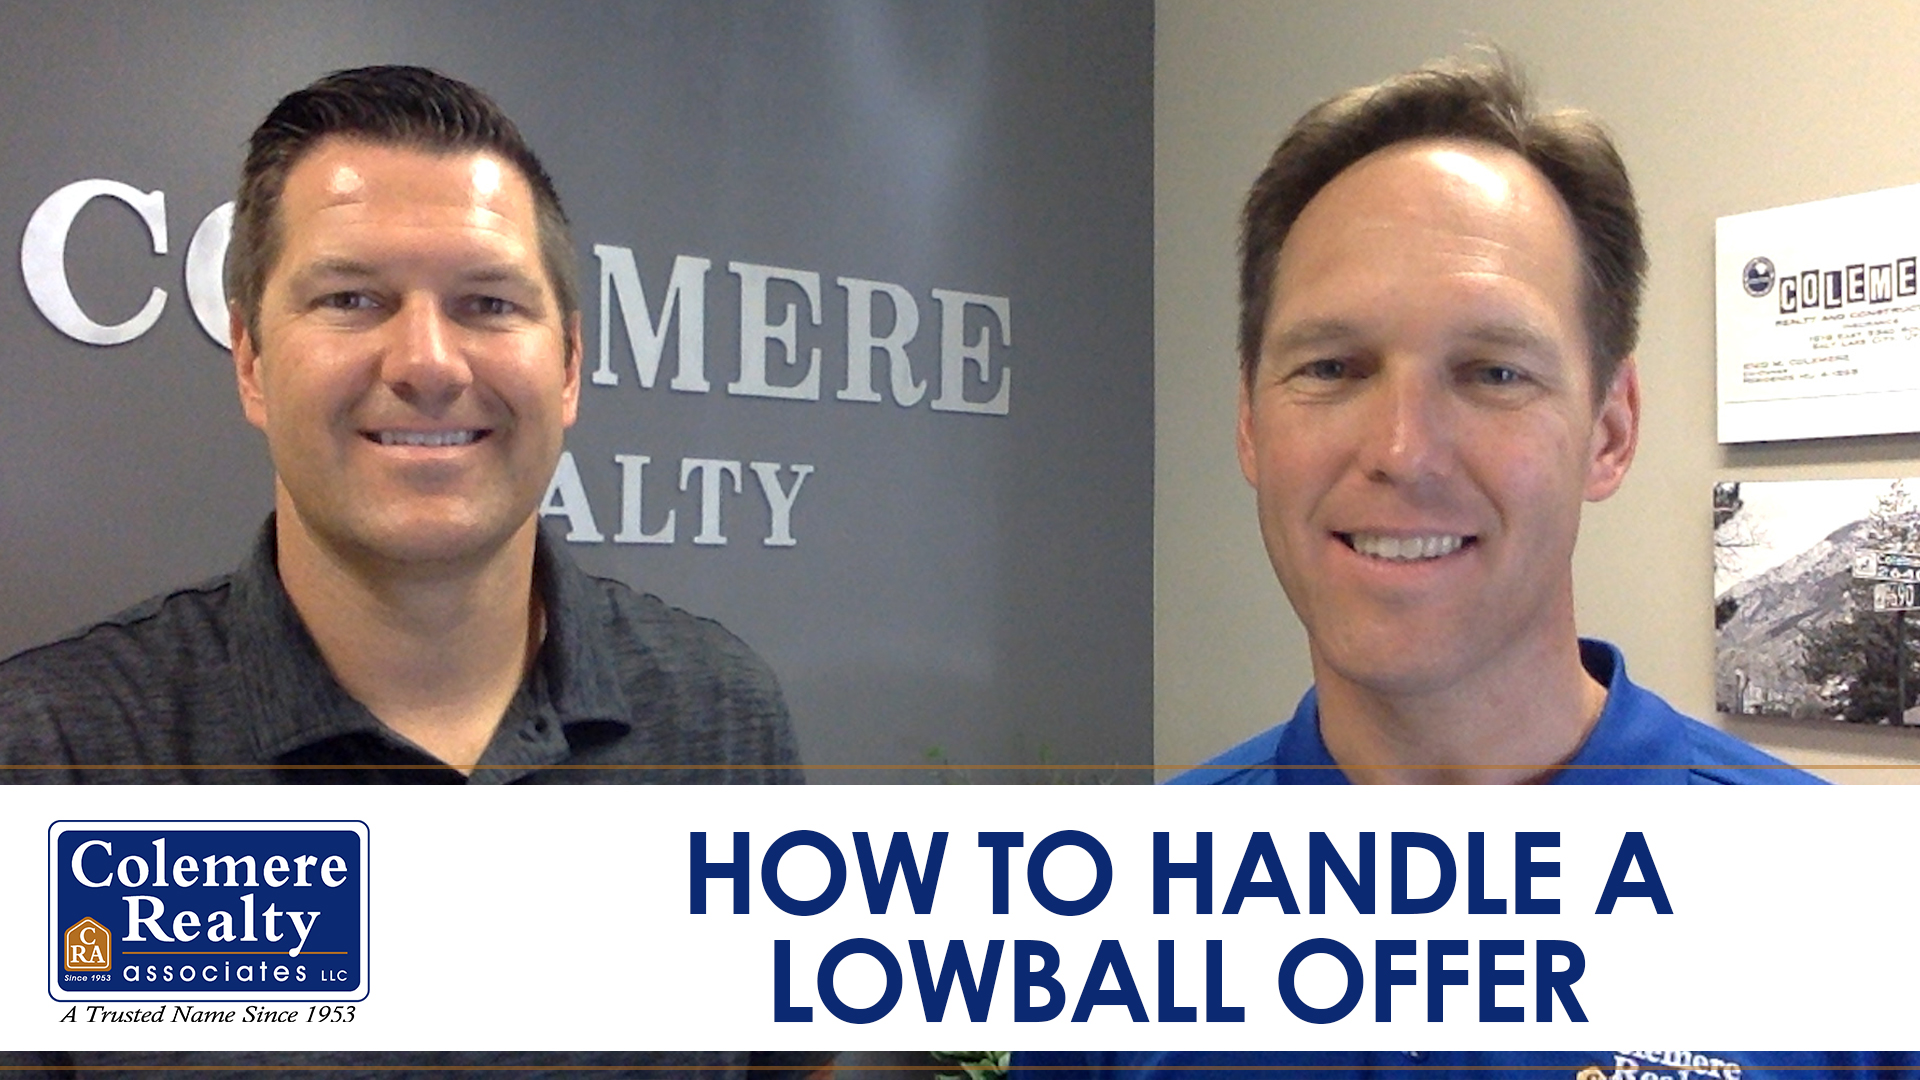 What to Do If You Receive a Lowball Offer